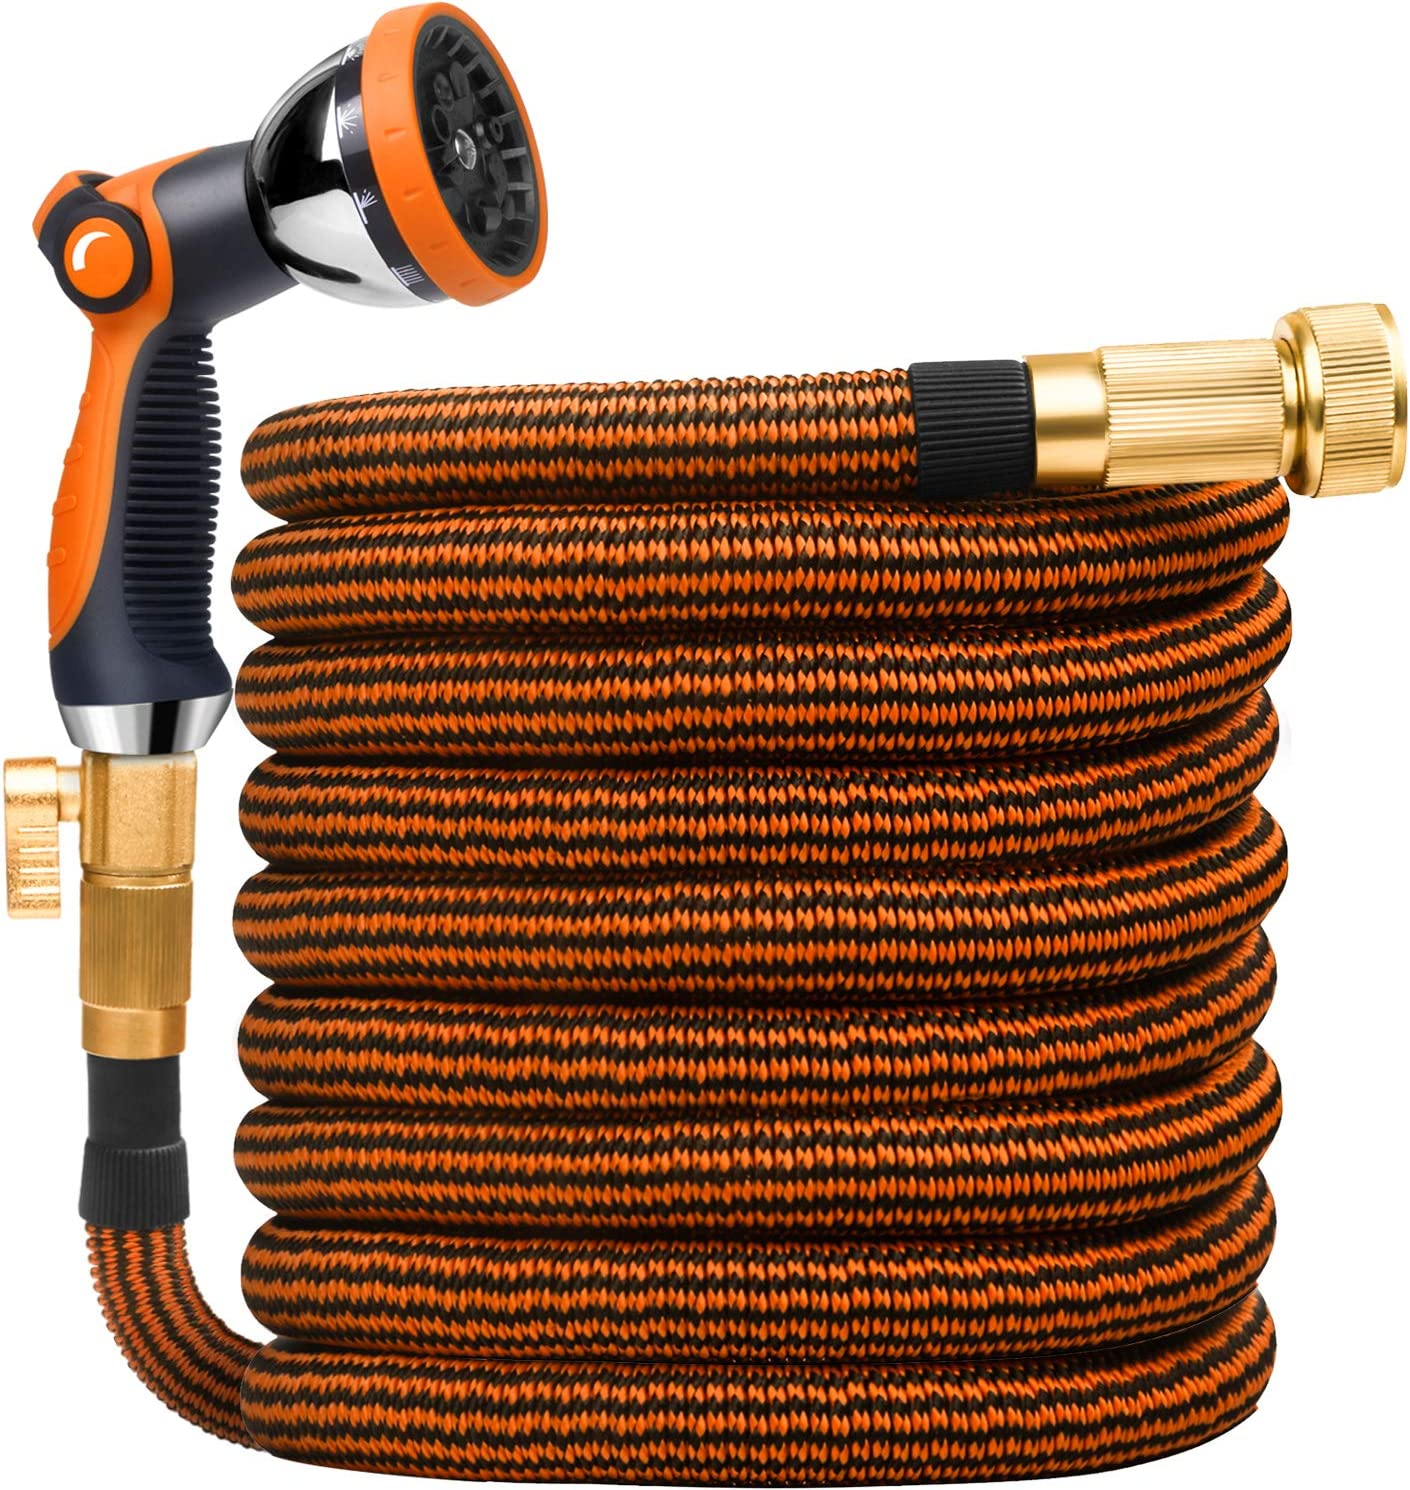 25FT Expandable Garden Hose , Expandable Water Hose With Auto 10 Function Spray Nozzle and Durable 3750D Fabric, 3/4 Solid Brass Connectors Garden Hose for Washing and Watering